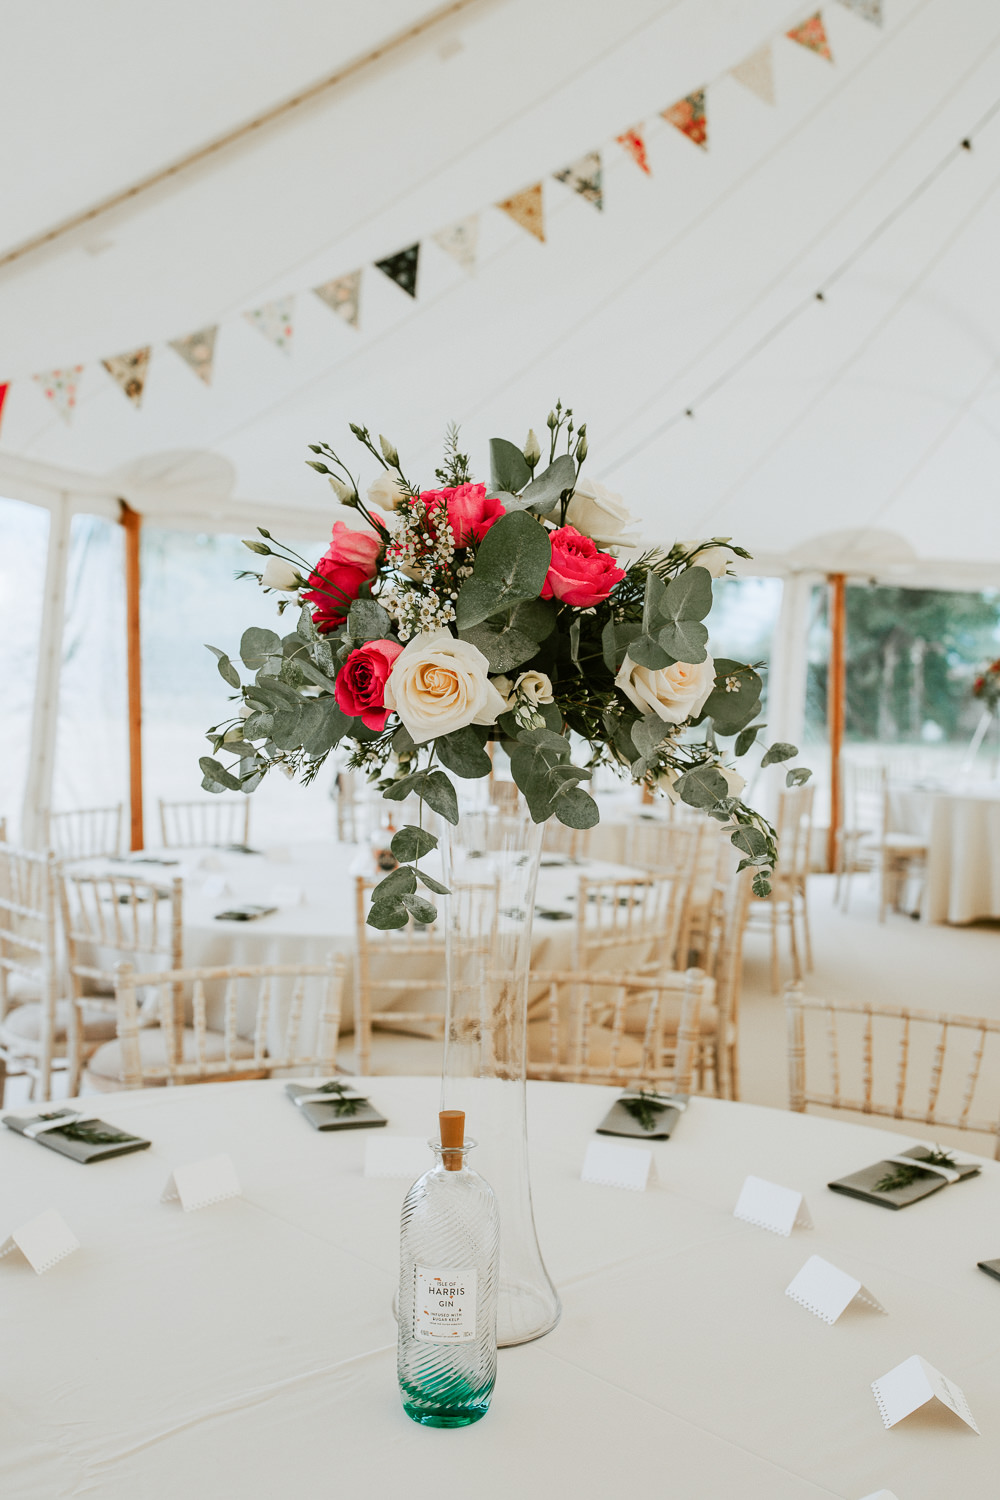 Table Centrepiece Tall Flowers Greenery Foliage Red Rose City Cathedral Country Marquee Wedding Siobhan Beales Photography